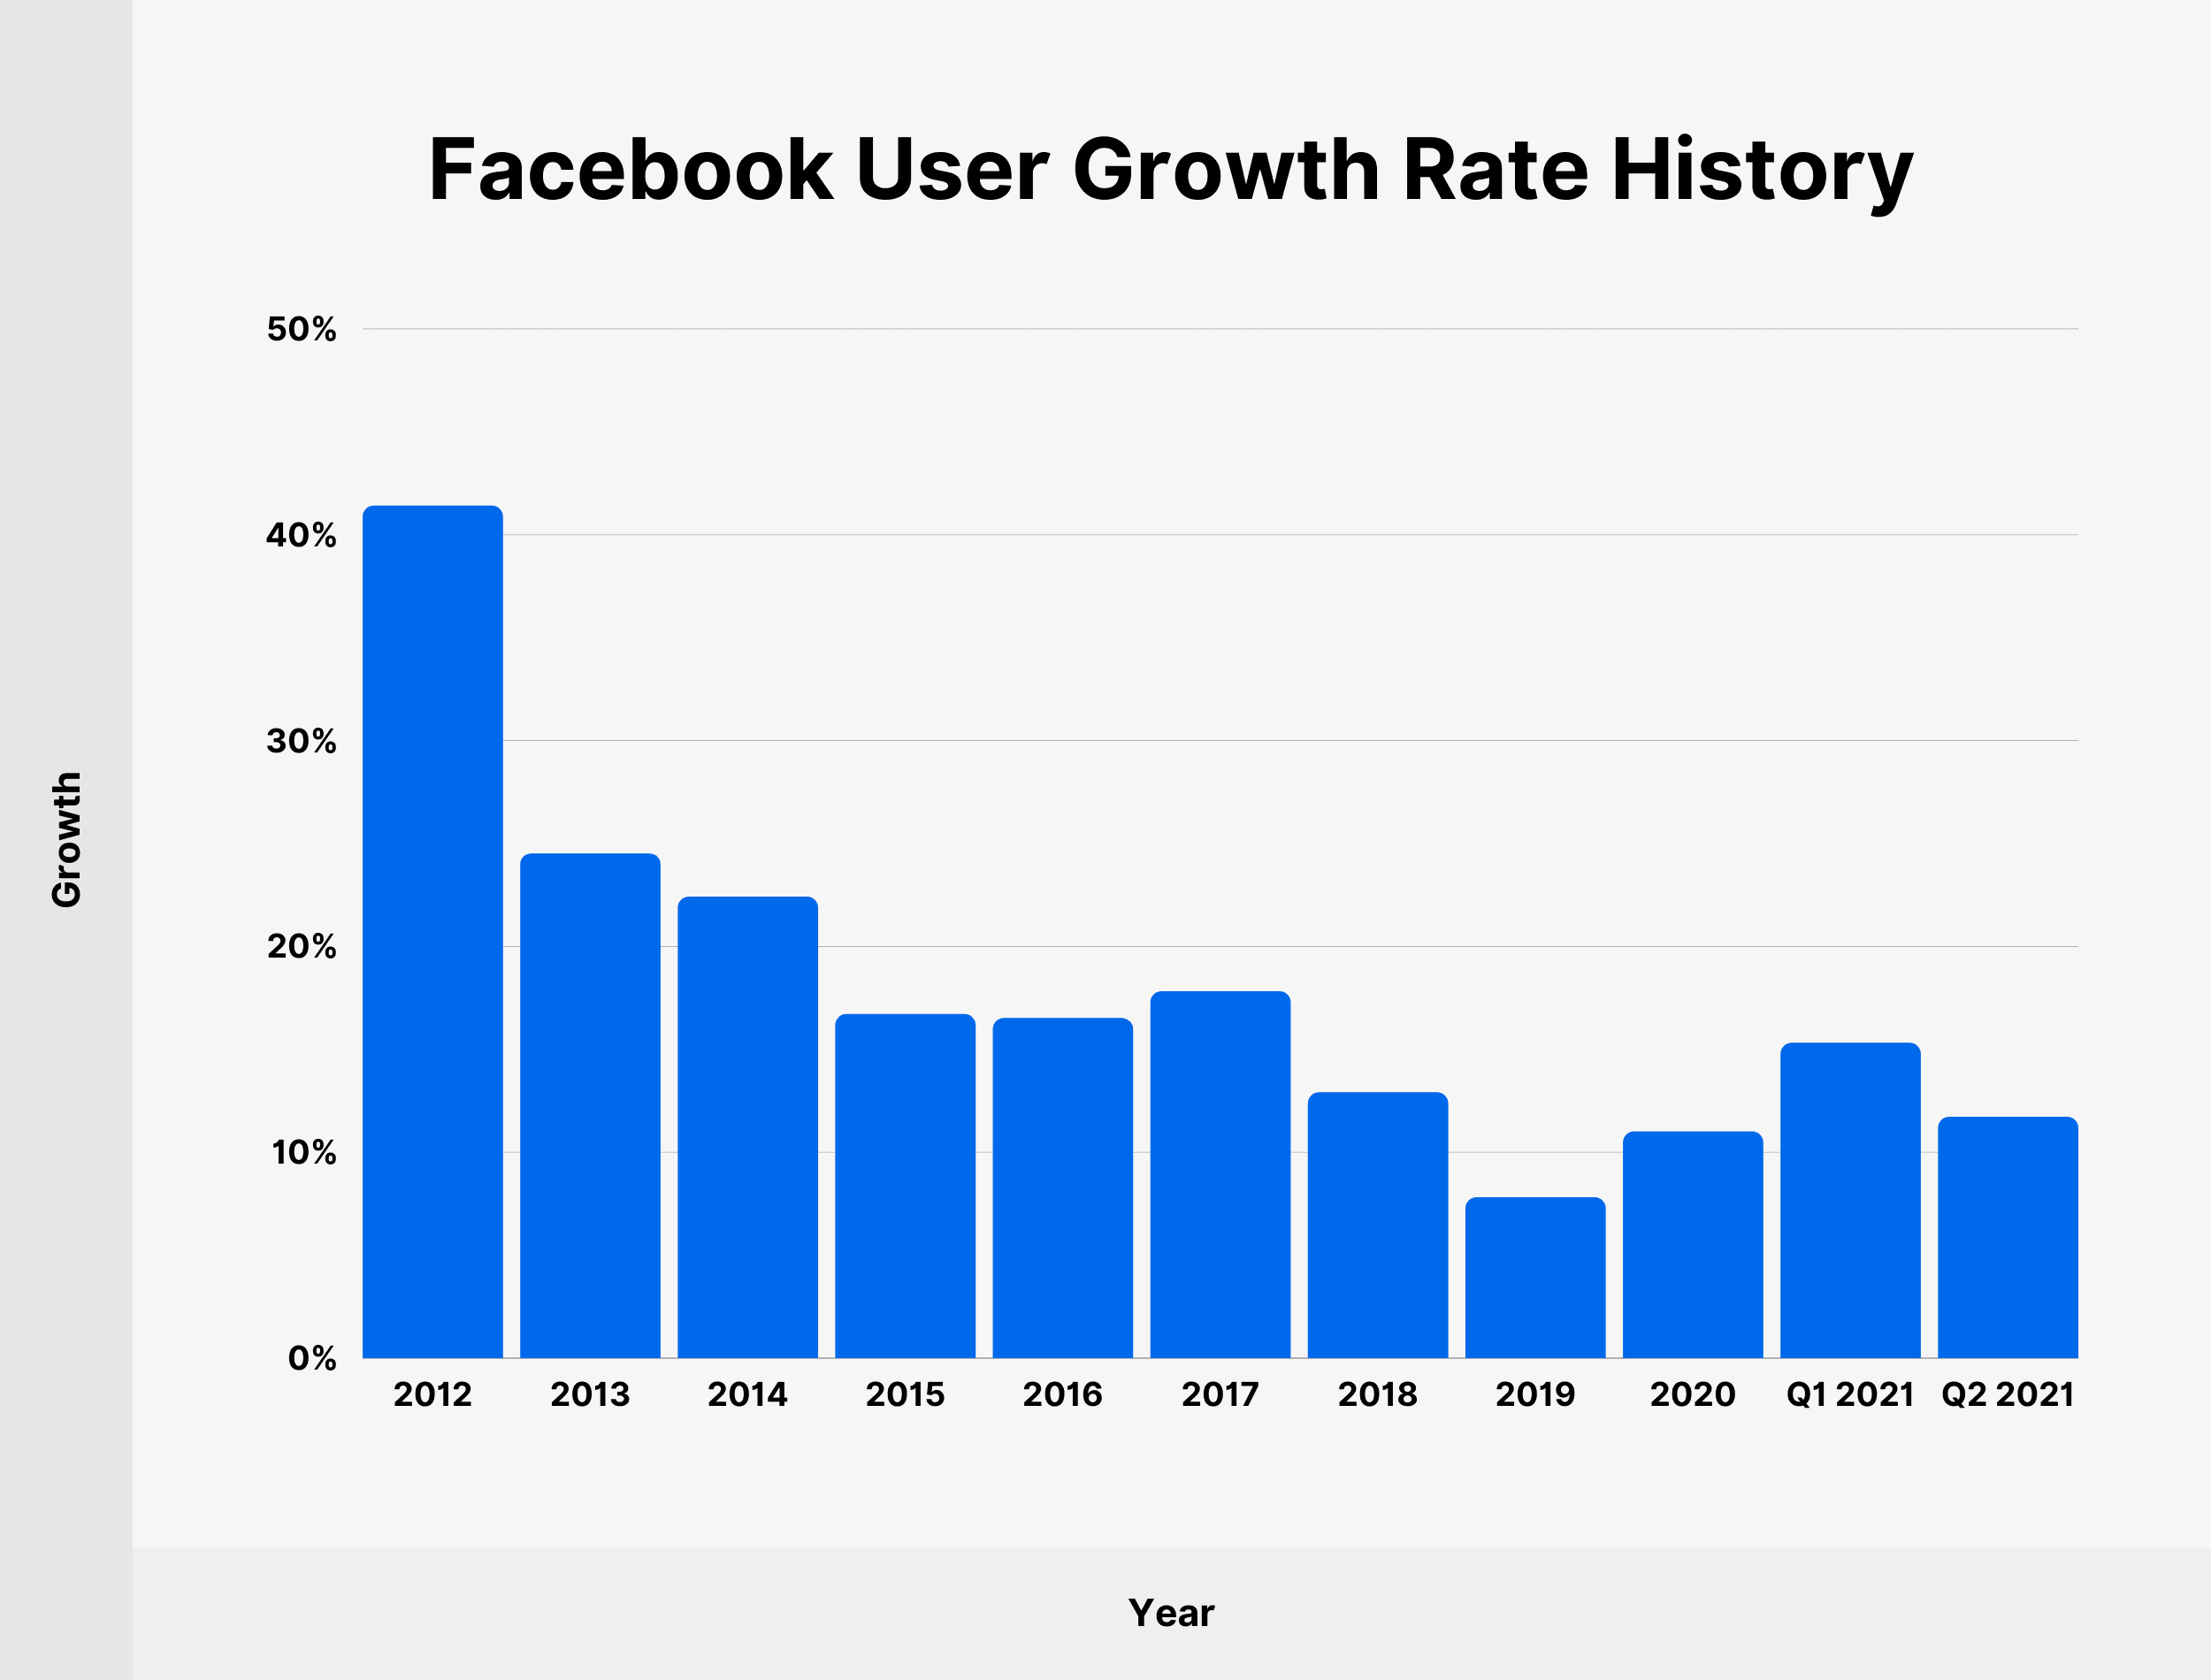 Facebook User Growth Rate History